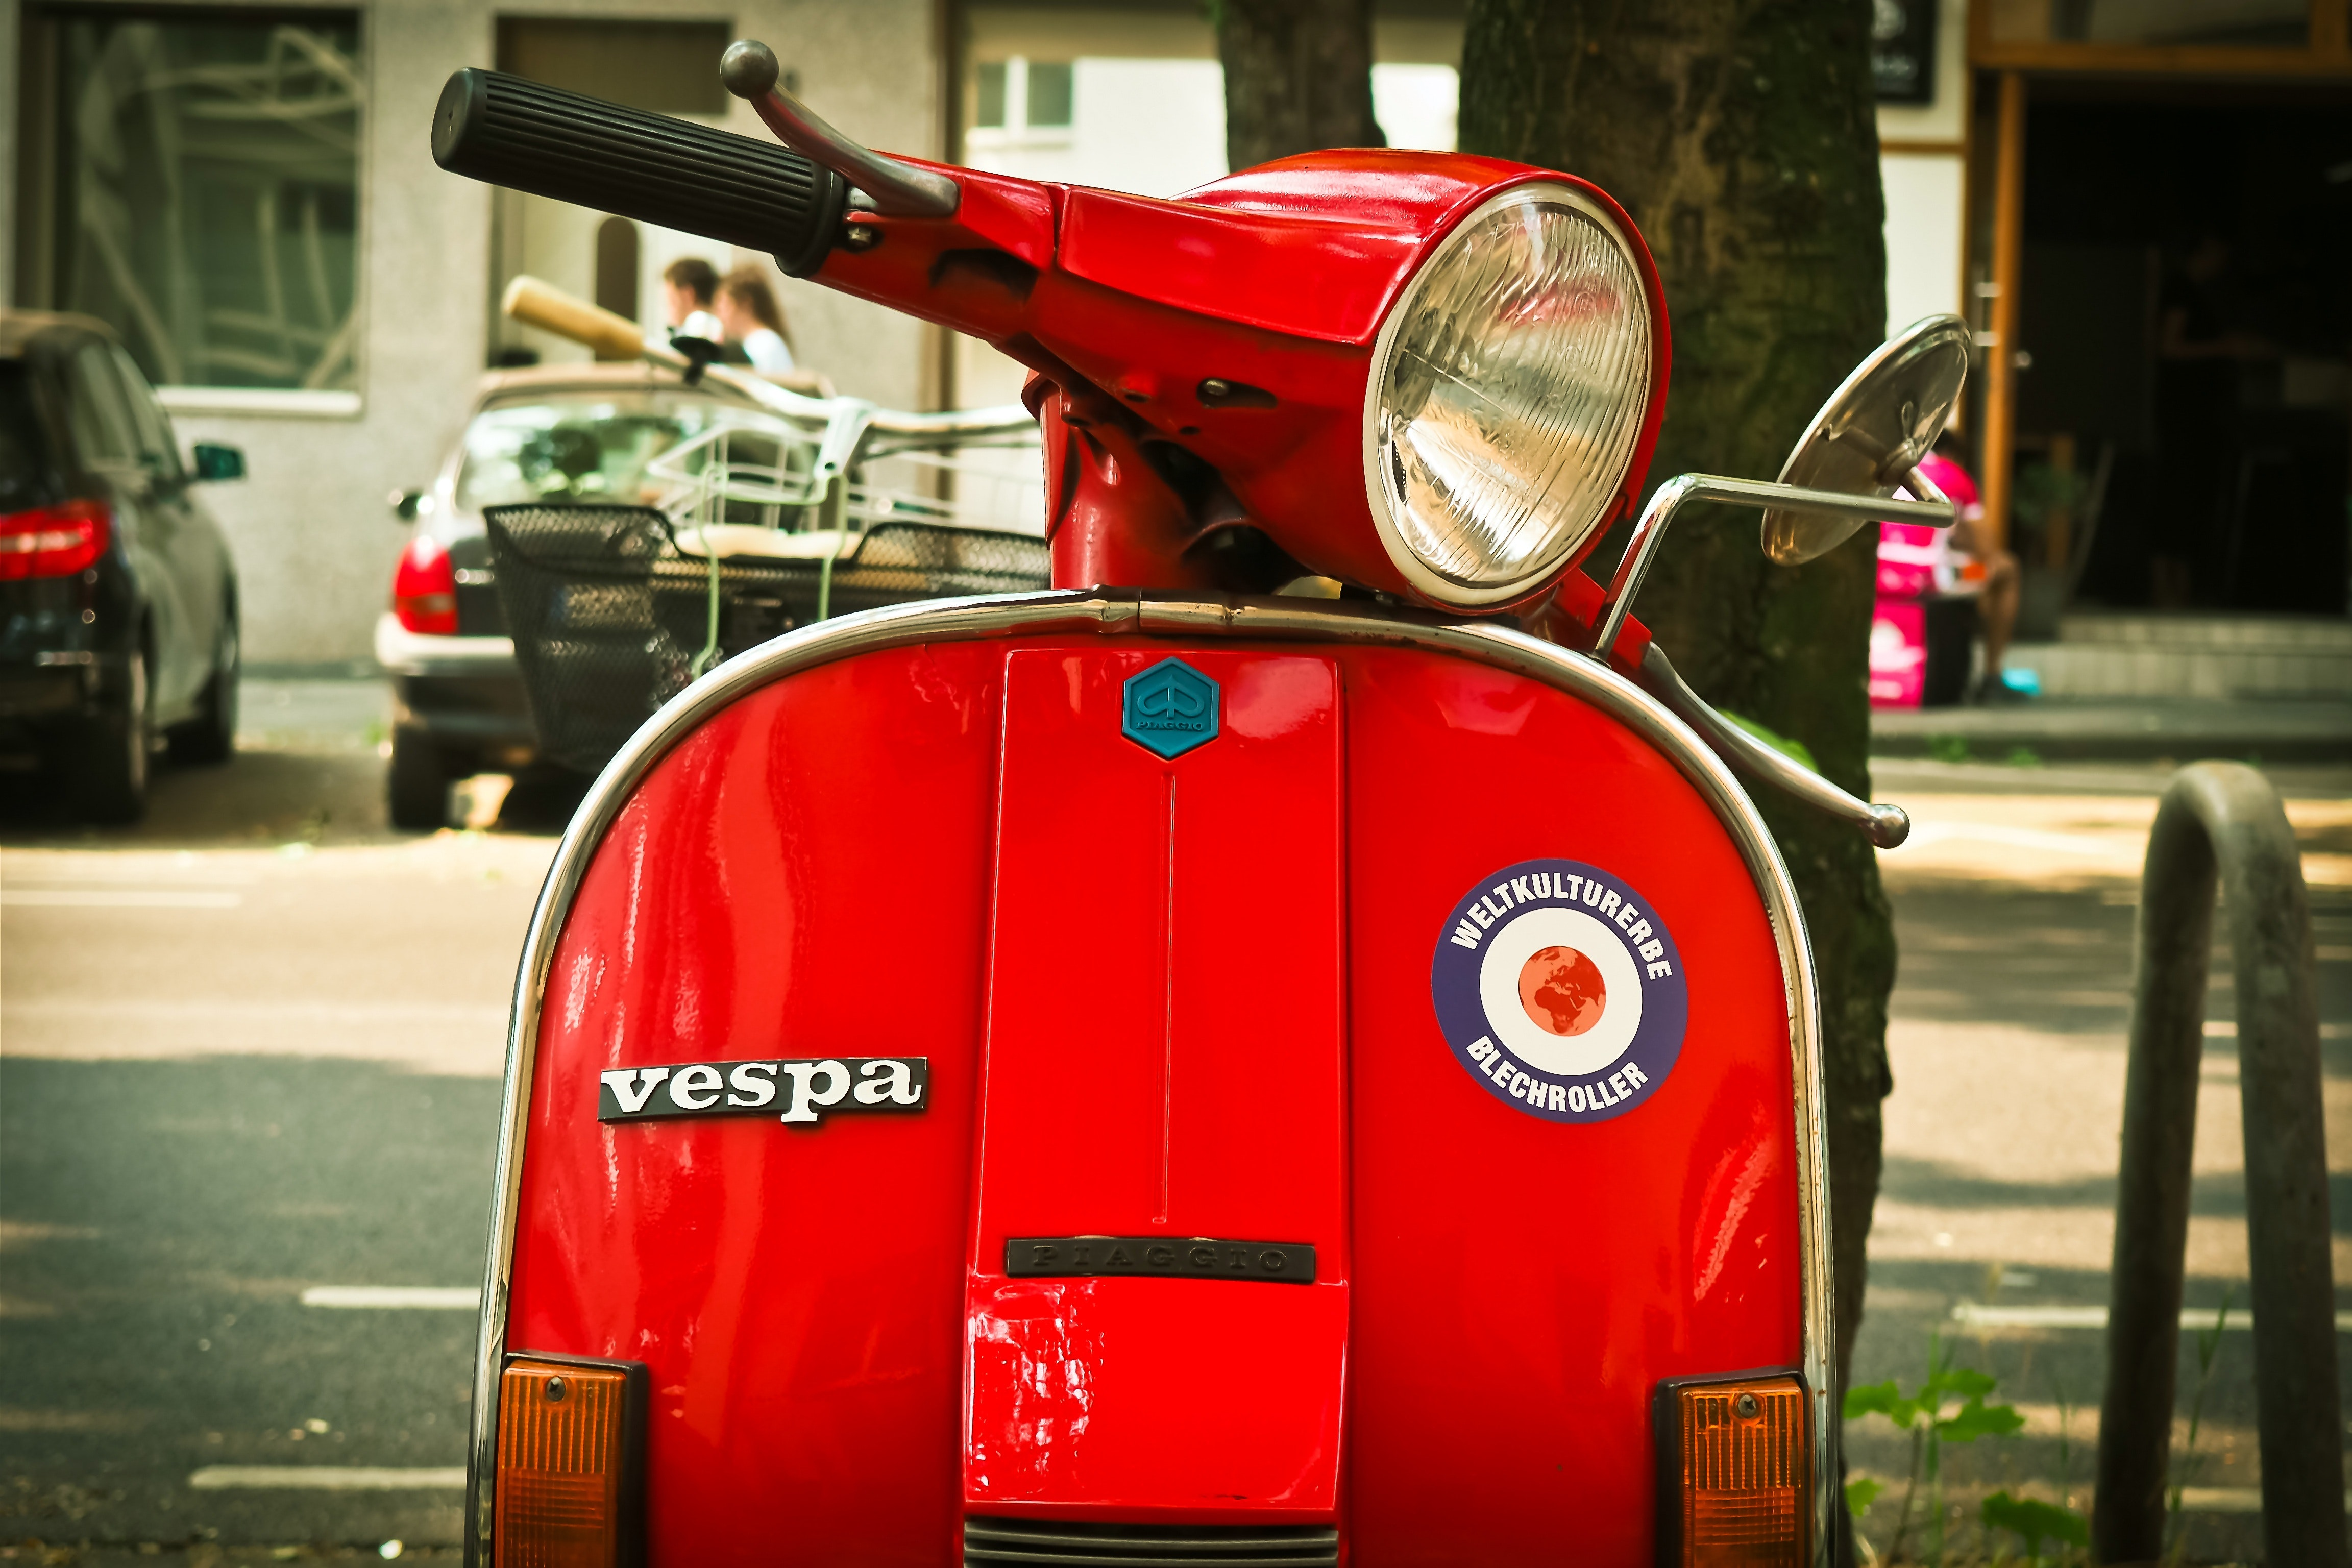 red vespa motor scooter parked near tree during daytime free stock